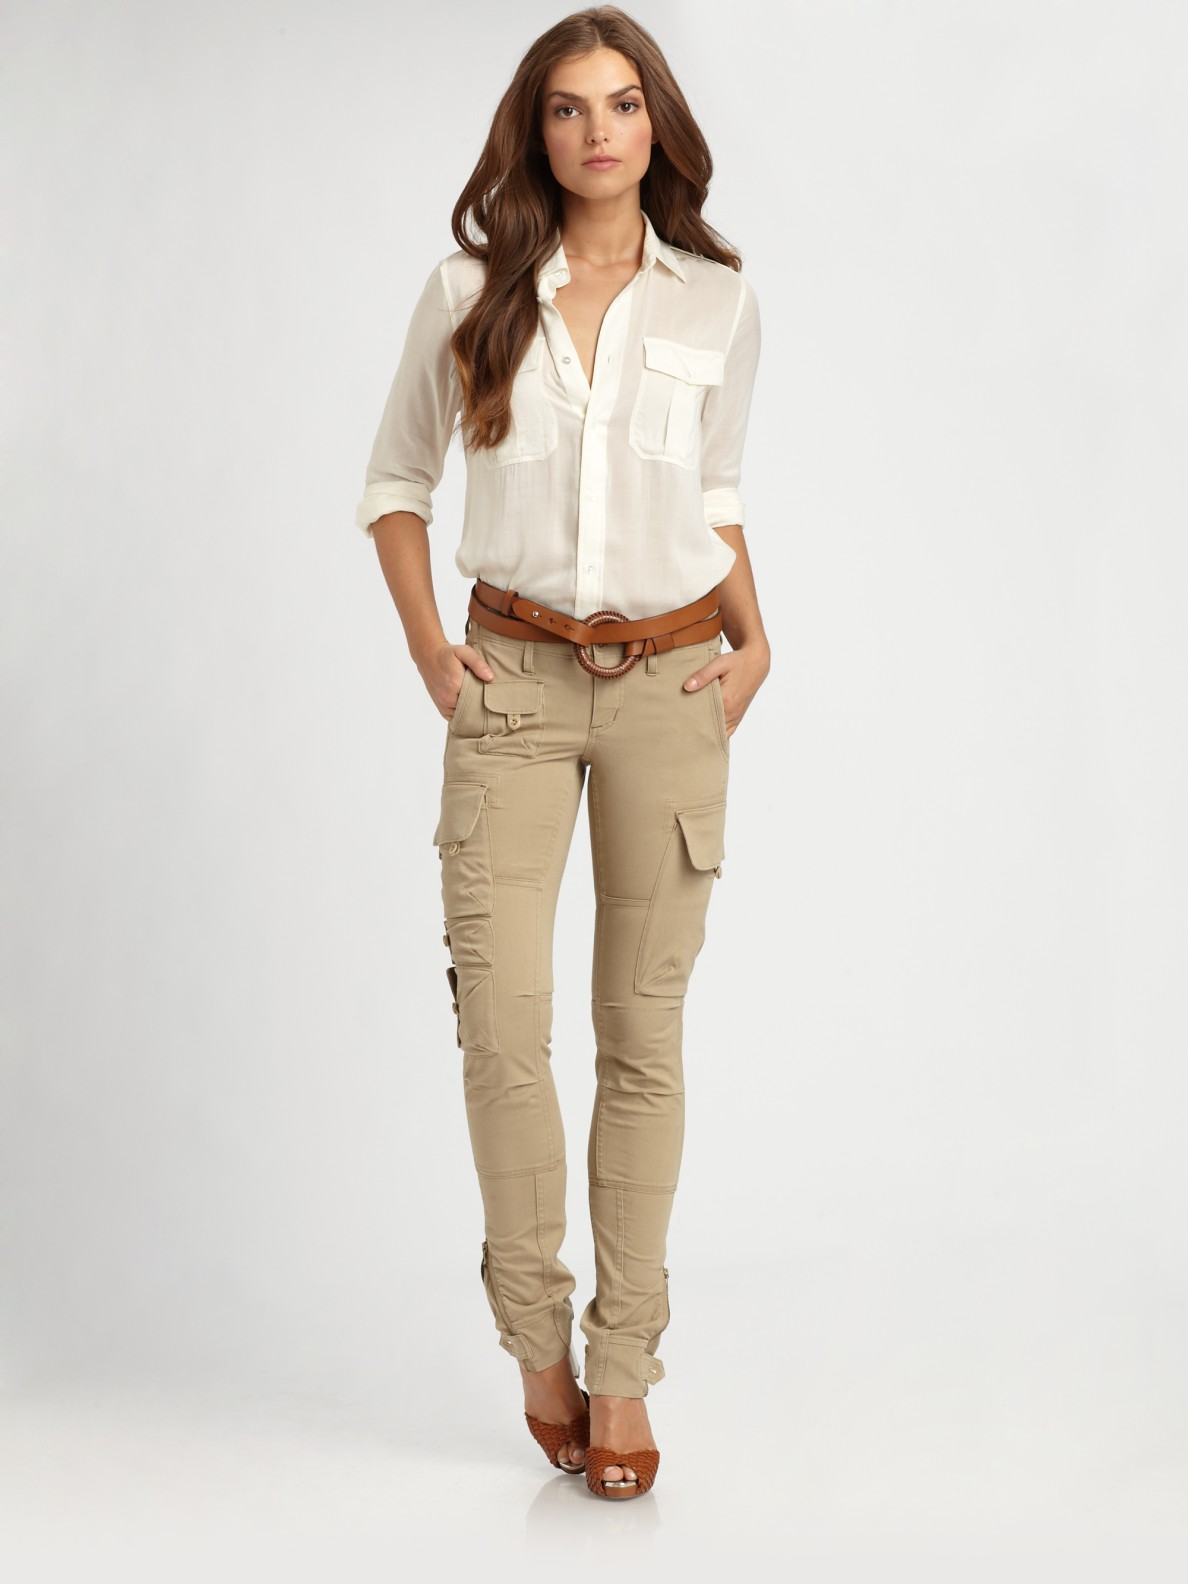 Perfect Skinny Khaki Pants Khaki Skinnies Tan Pants Khakis Denim Pants Uniform